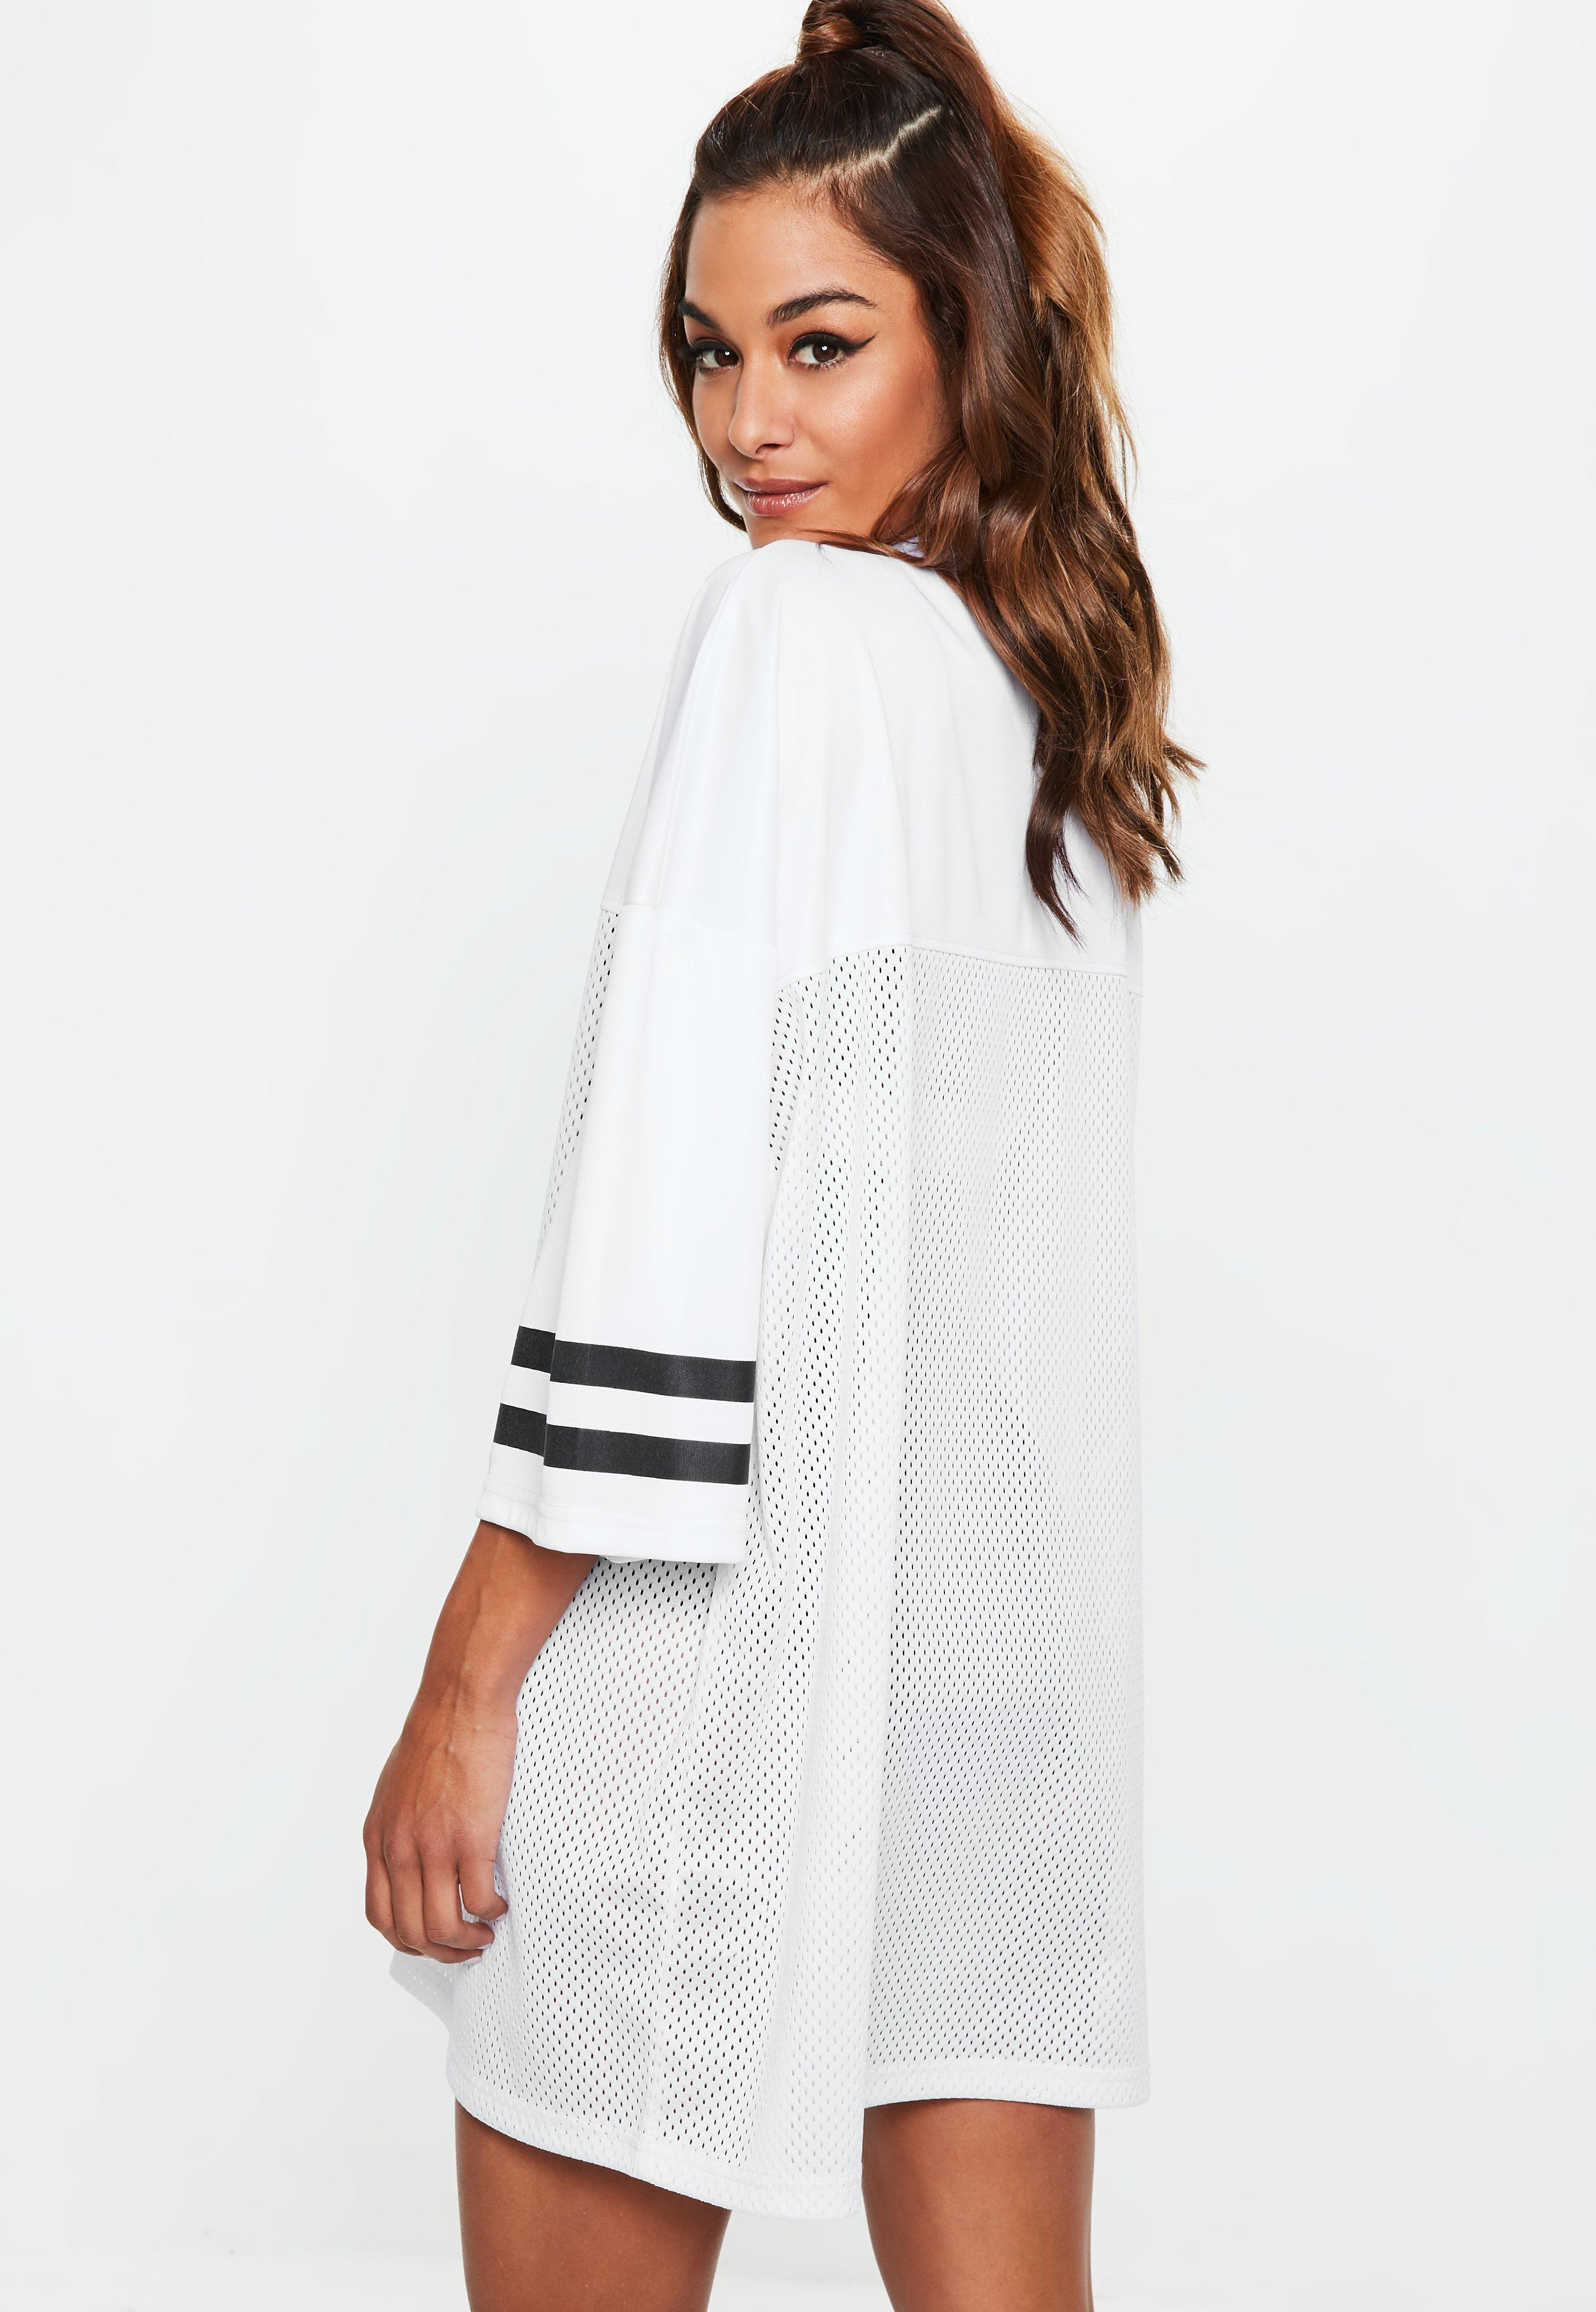 Lyst - Missguided White American Football Mesh Shirt Dress in White a35a5334b